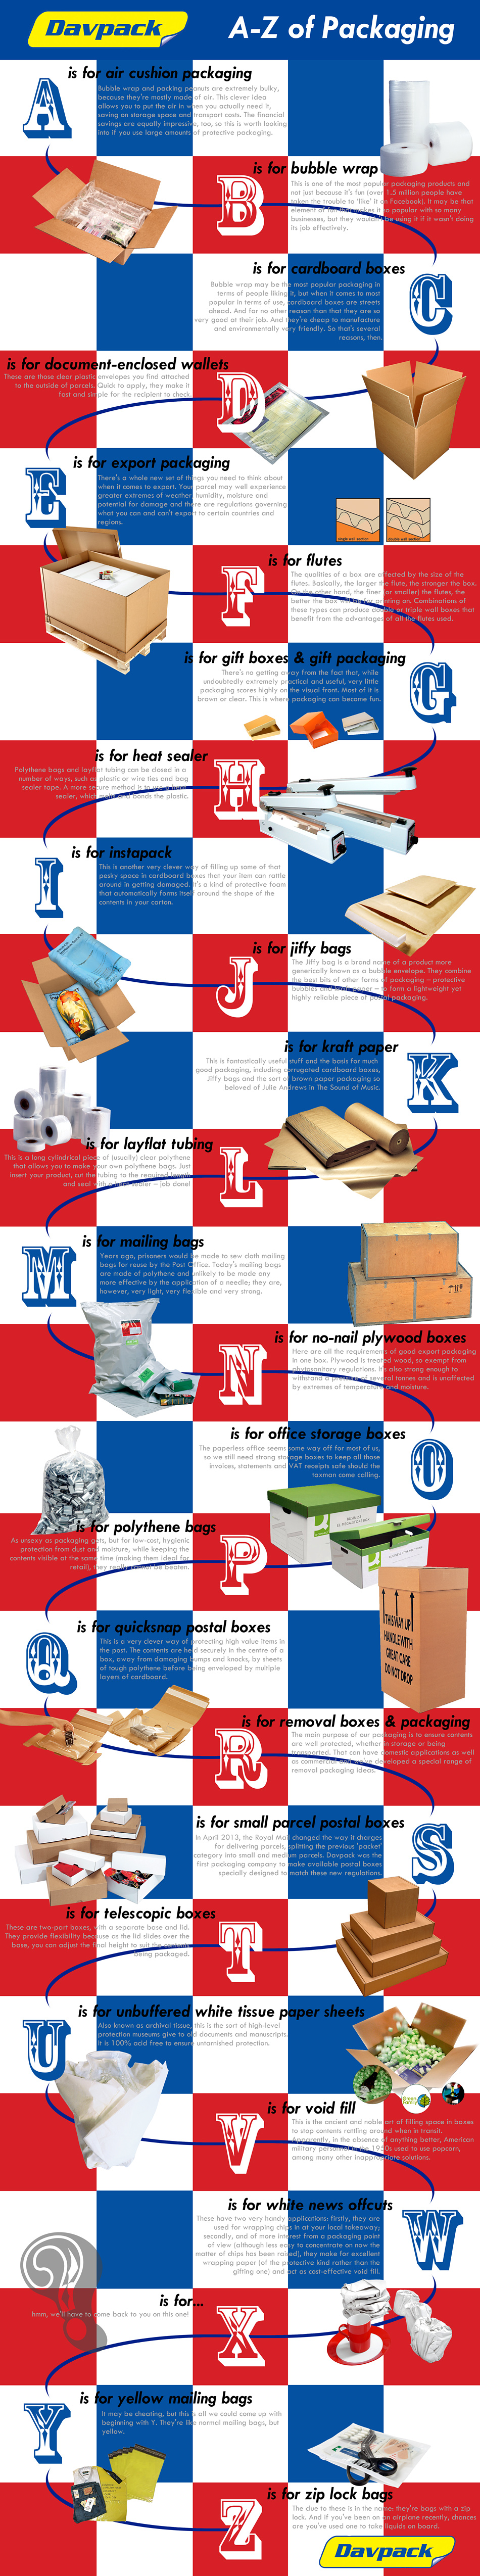 Infographic : A-Z of Packaging